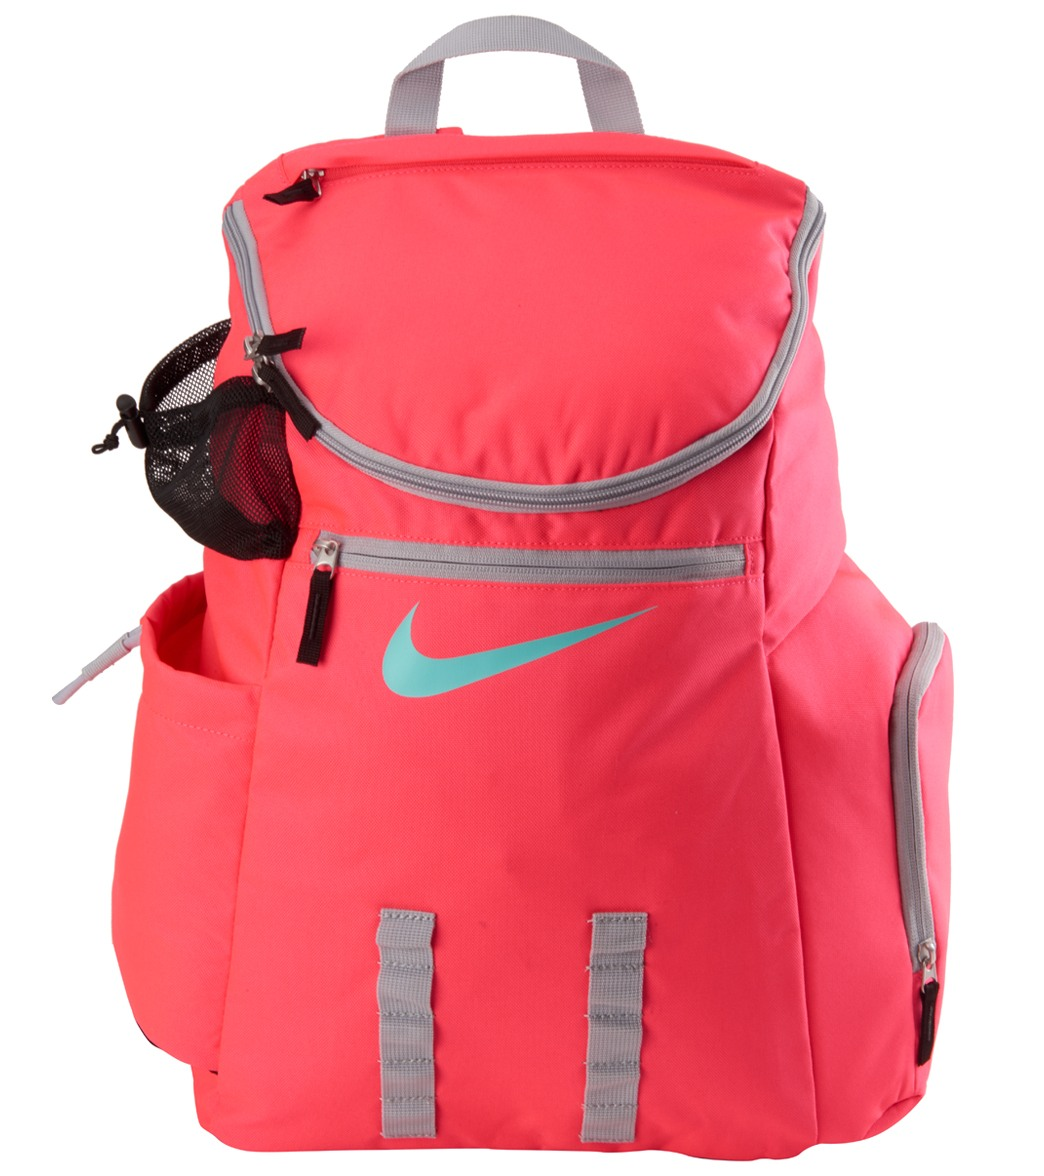 Nike Swimmer s Backpack II at SwimOutlet.com - Free Shipping 926c9a97019b